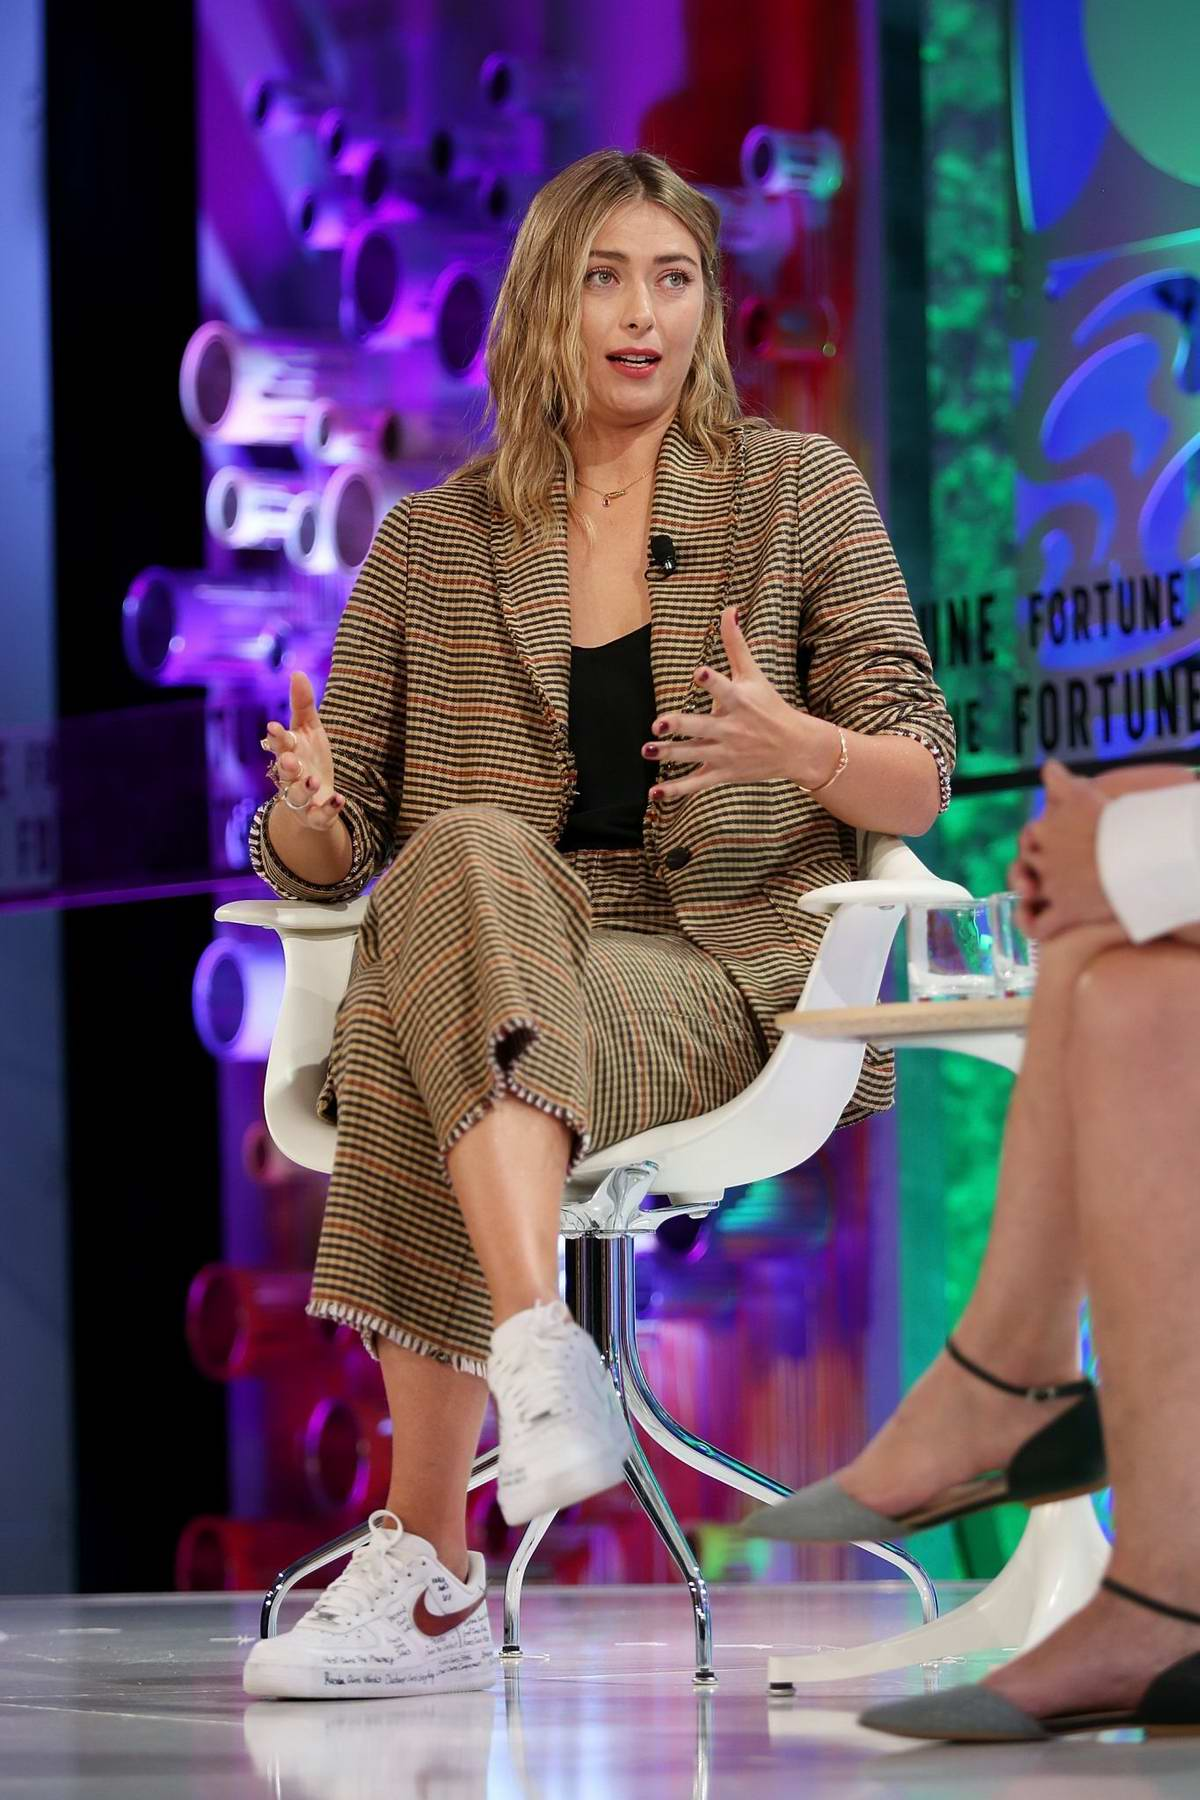 Maria Sharapova speaks onstage at the Fortune Most Powerful Women Summit 2018 in Laguna Niguel, California